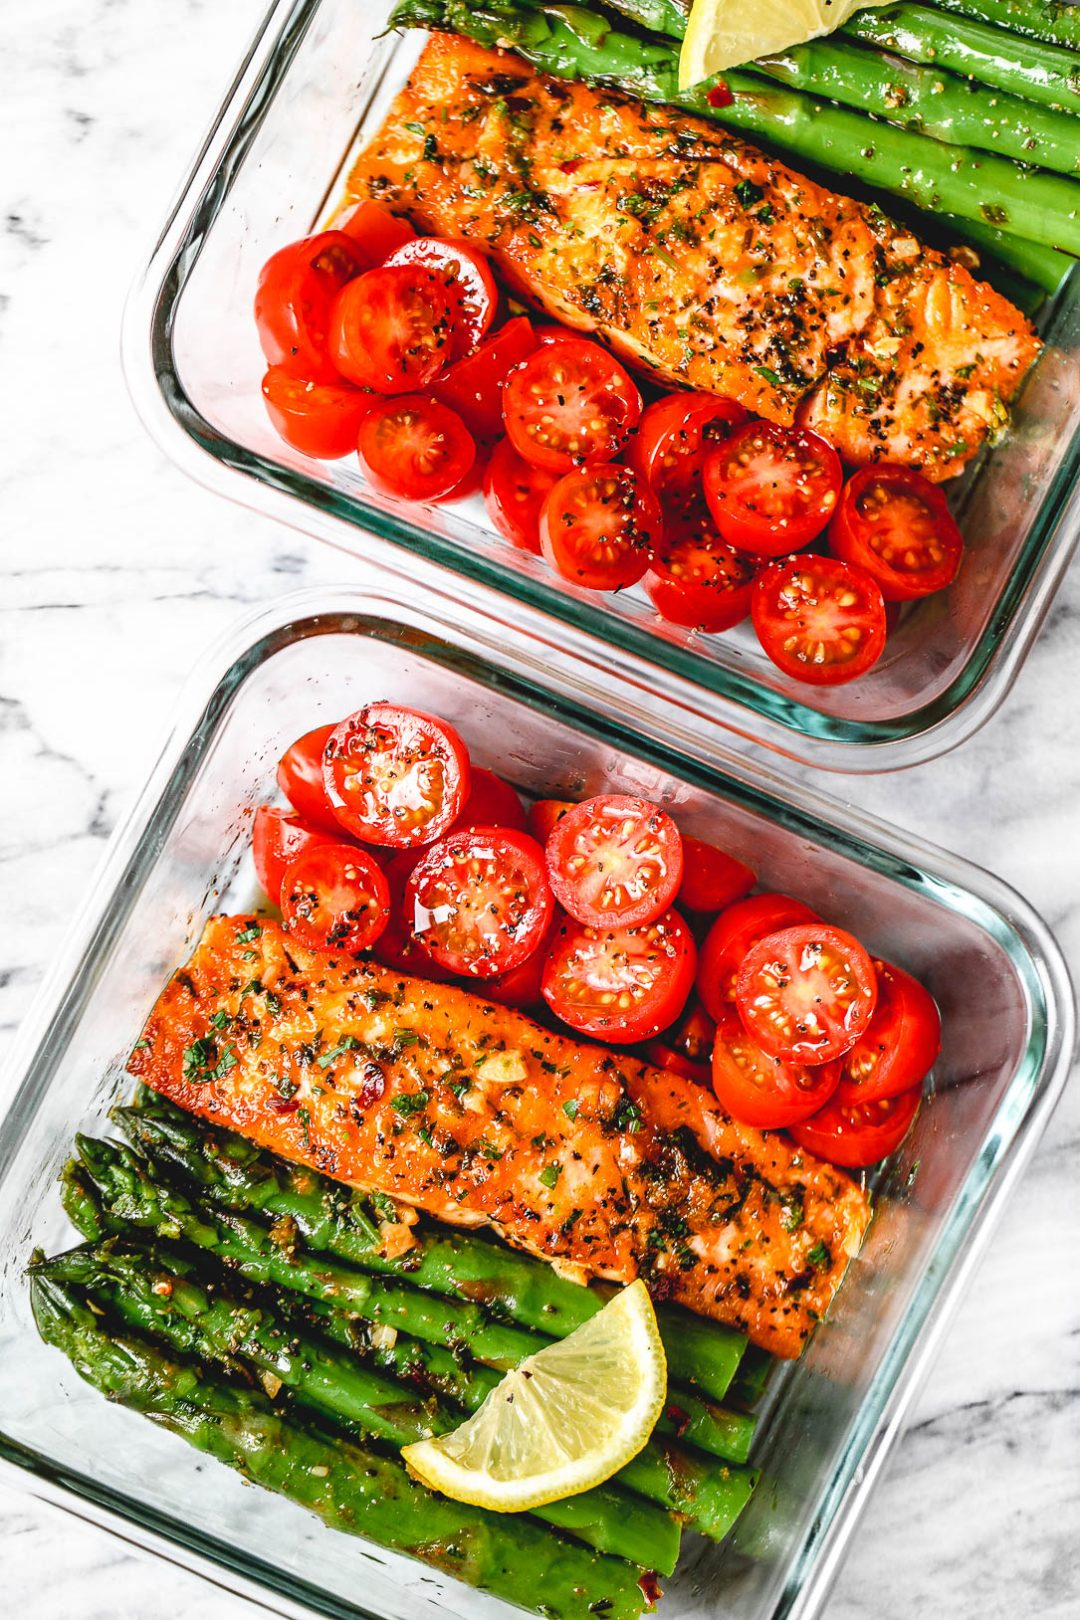 Salmon and Asparagus in Garlic Lemon Butter Sauce Meal Prep